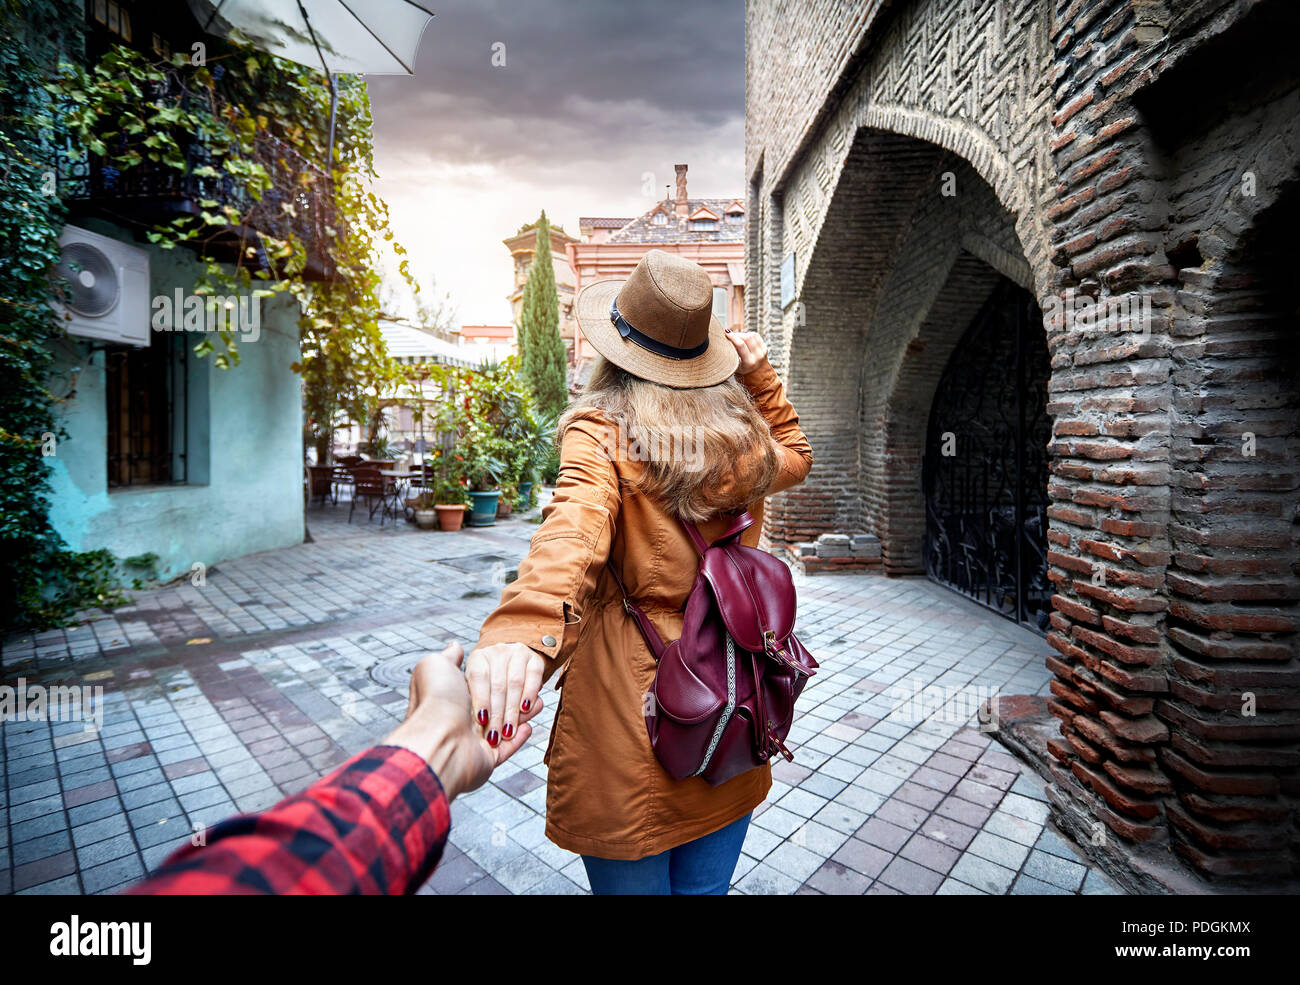 Woman in hat and brown jacket leading man to the narrow street in old, Georgia - Stock Image